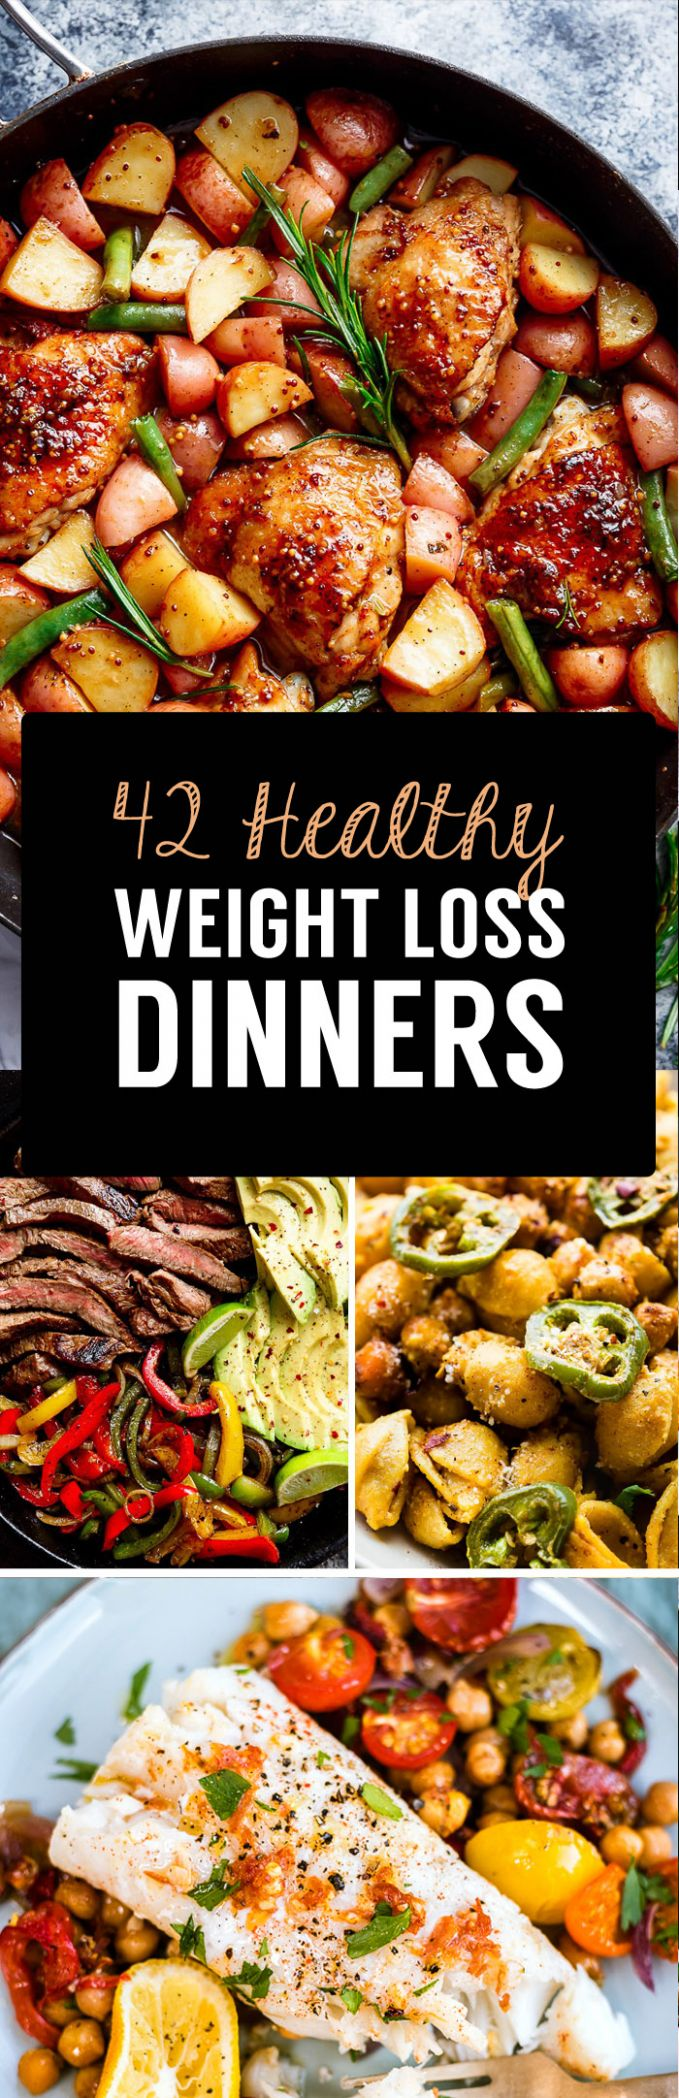 10 Weight Loss Dinner Recipes That Will Help You Shrink Belly Fat ...